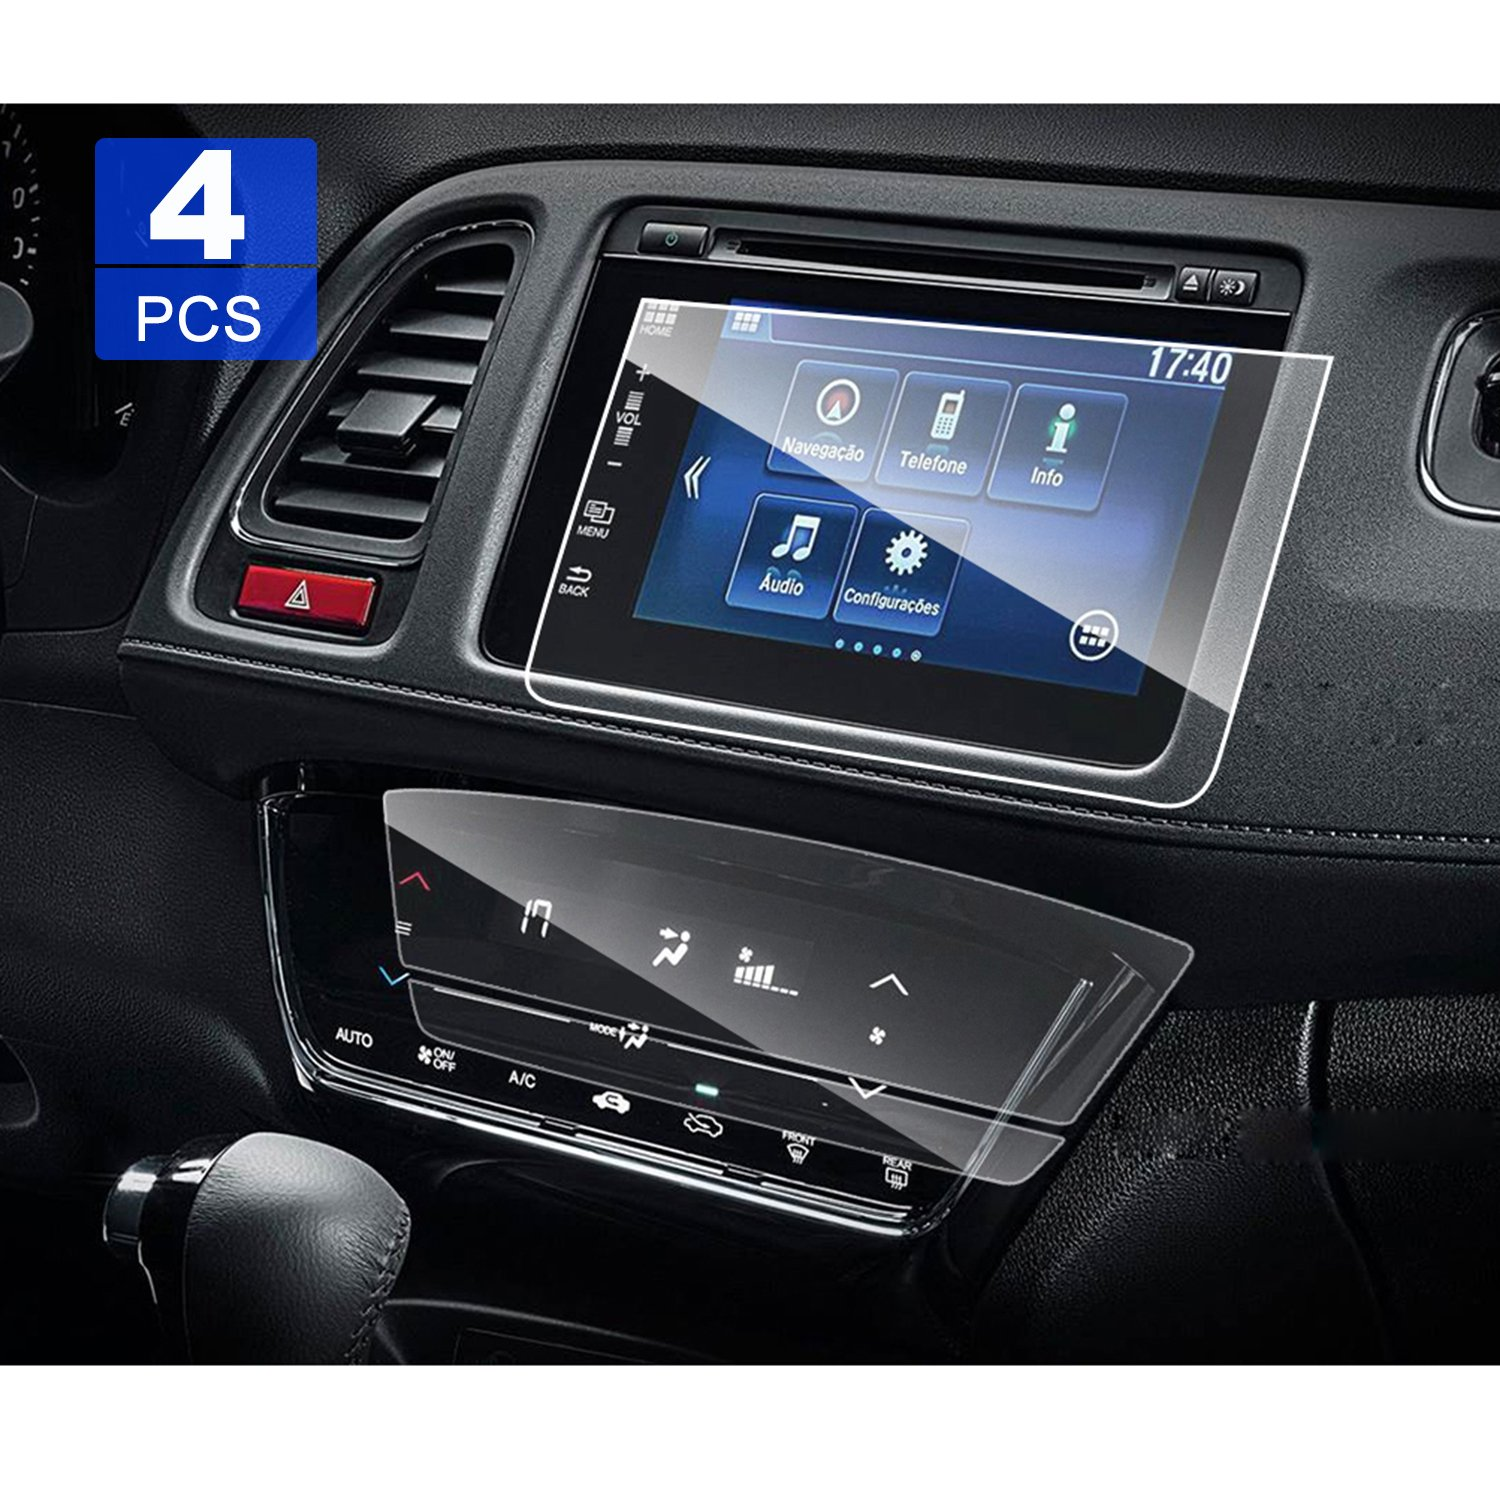 4 PCS LFOTPP 2016 2017 2018 Honda HR-V EX EXL ANTI-GLARE PET Screen Protector, 7 Inch [ 2 PCS Car Navigation + 2 PCS Air Conditioning Screen Protector ] for Center Touch Climate Display